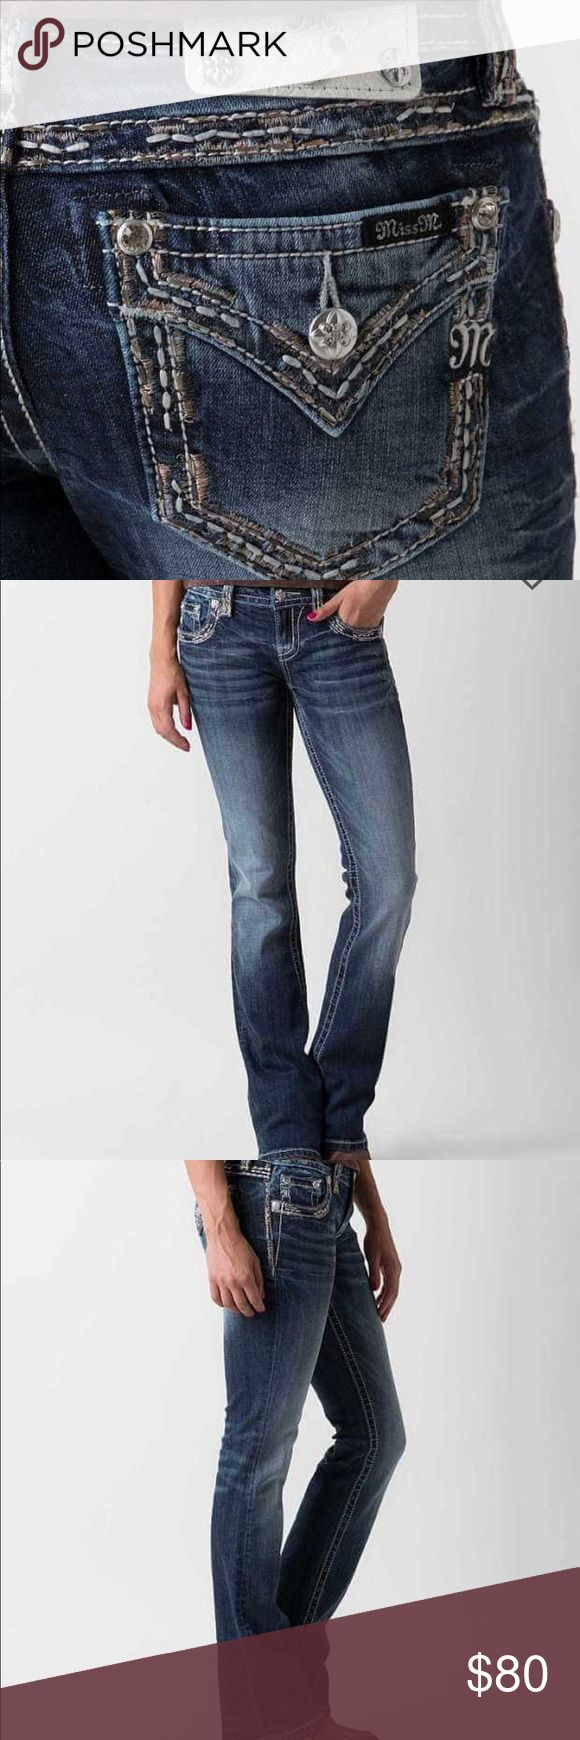 MISS ME boot stretch jeans Awesome condition, only worn once! Inseam 31 1400 Miss Me Jeans Boot Cut